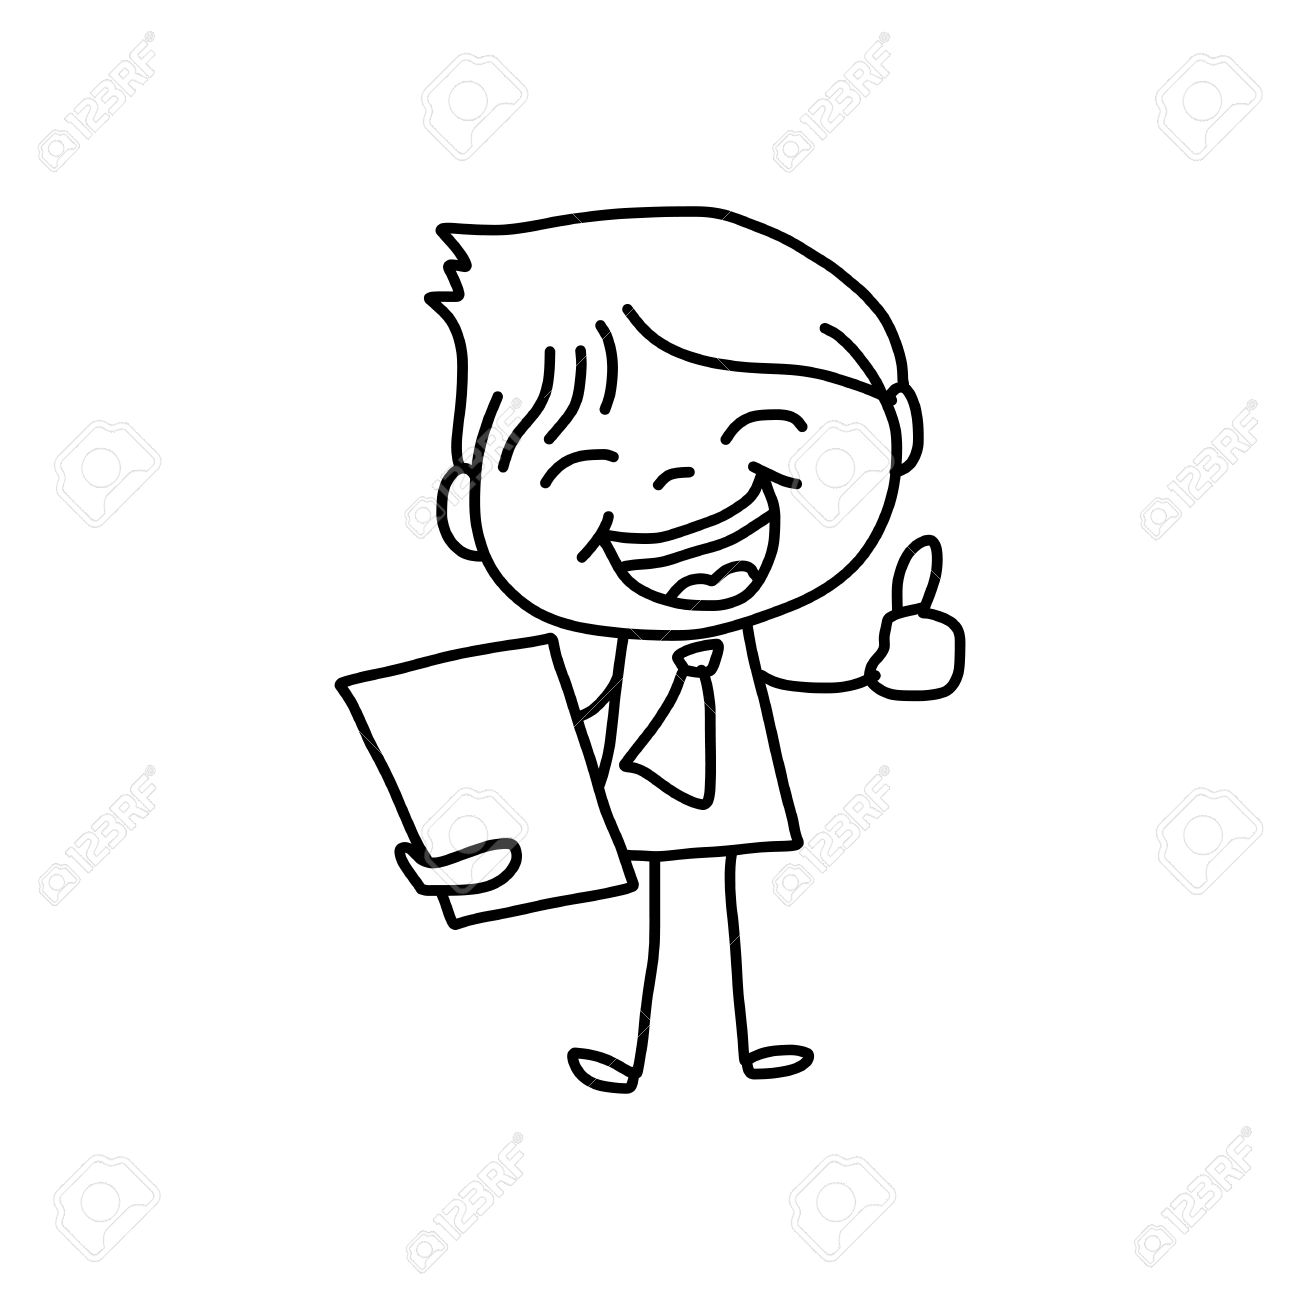 1300x1300 Hand Drawing Cartoon Character Happy Business Person Royalty Free